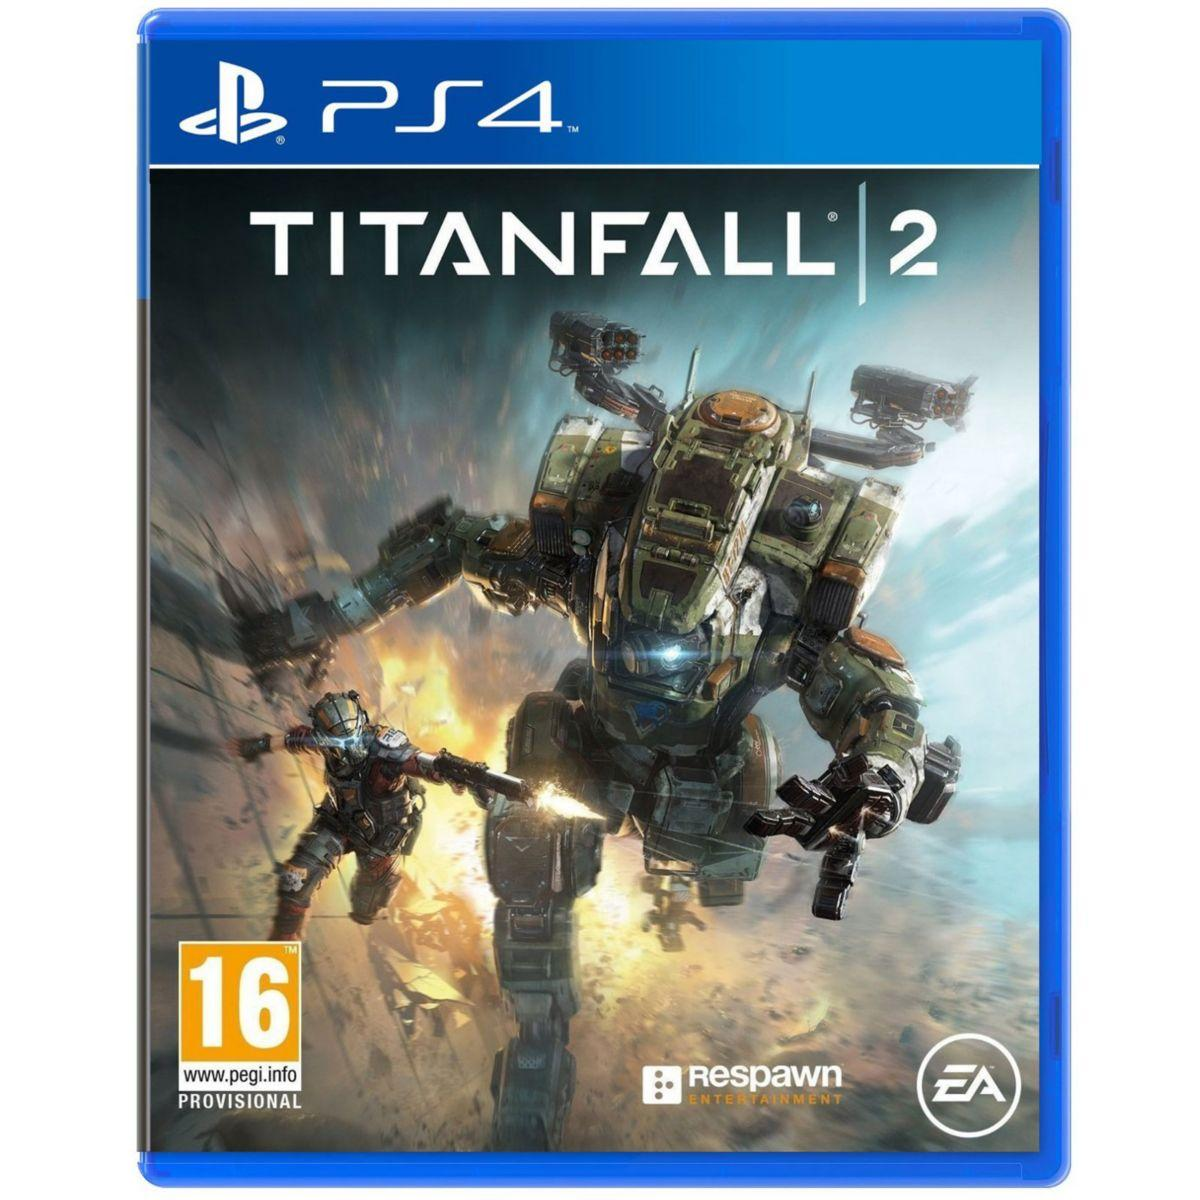 Jeu ps4 electronic arts titanfall 2 (photo)